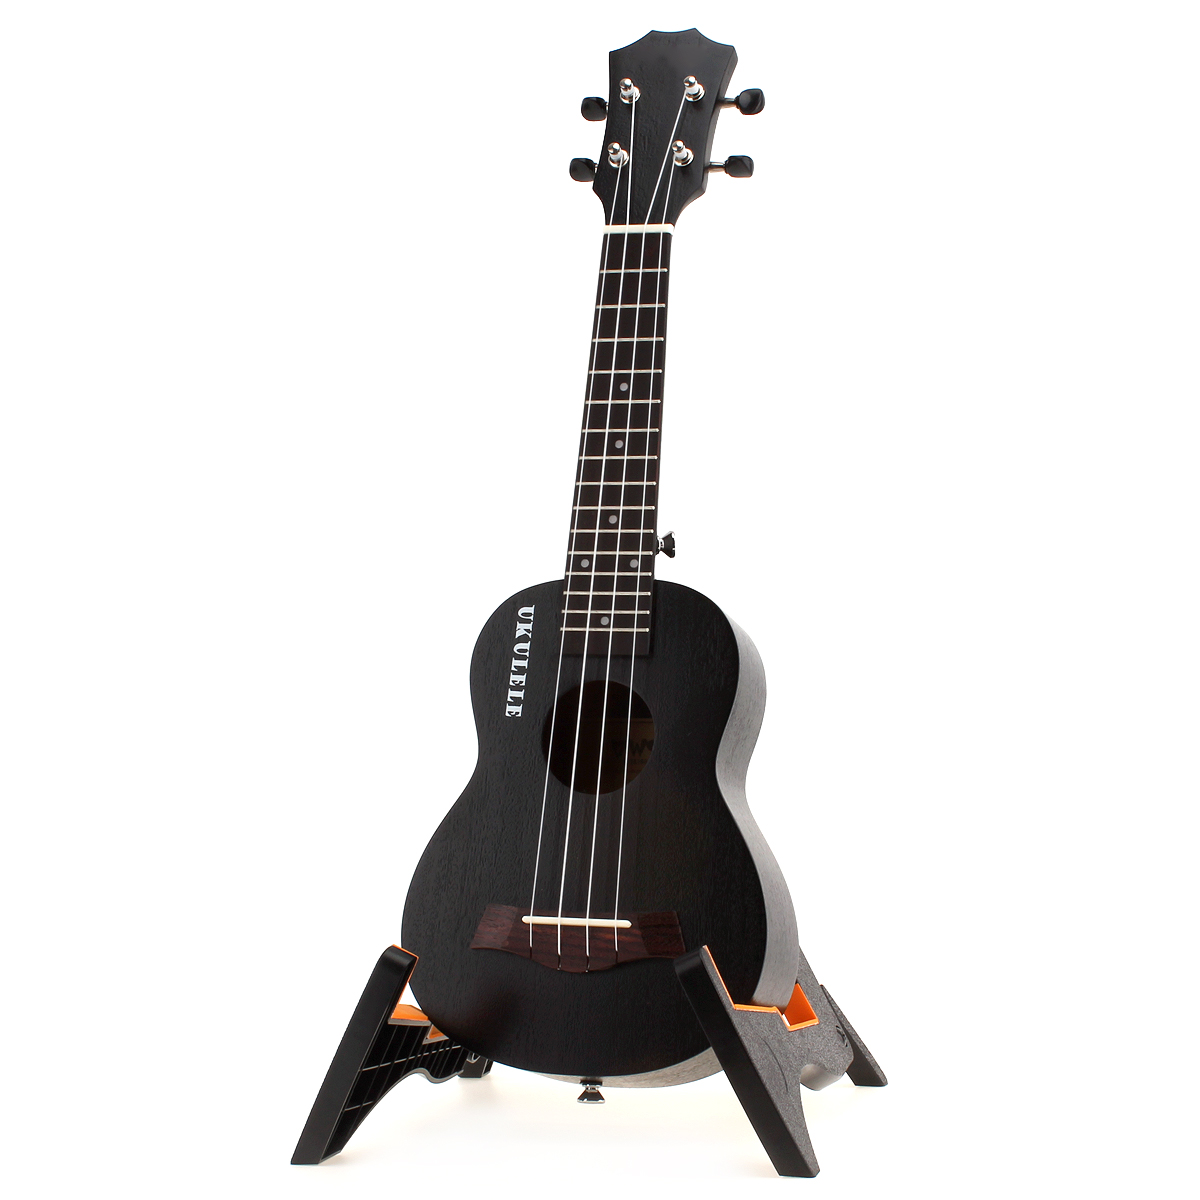 21 Inch Soprano Ukulele Hawaiian Four Strings Guitar Mahogany Wood Ukelele Guitarra